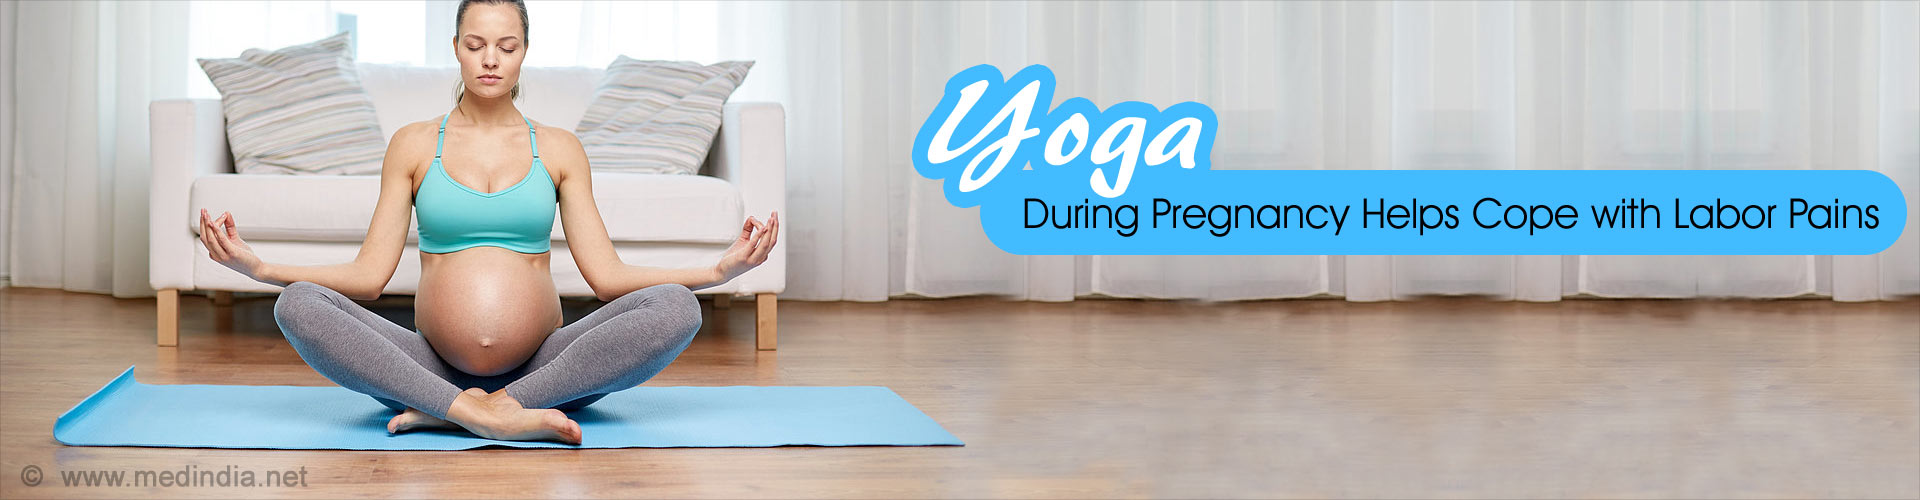 Yoga During Pregnancy Helps Cope with Labor Pain